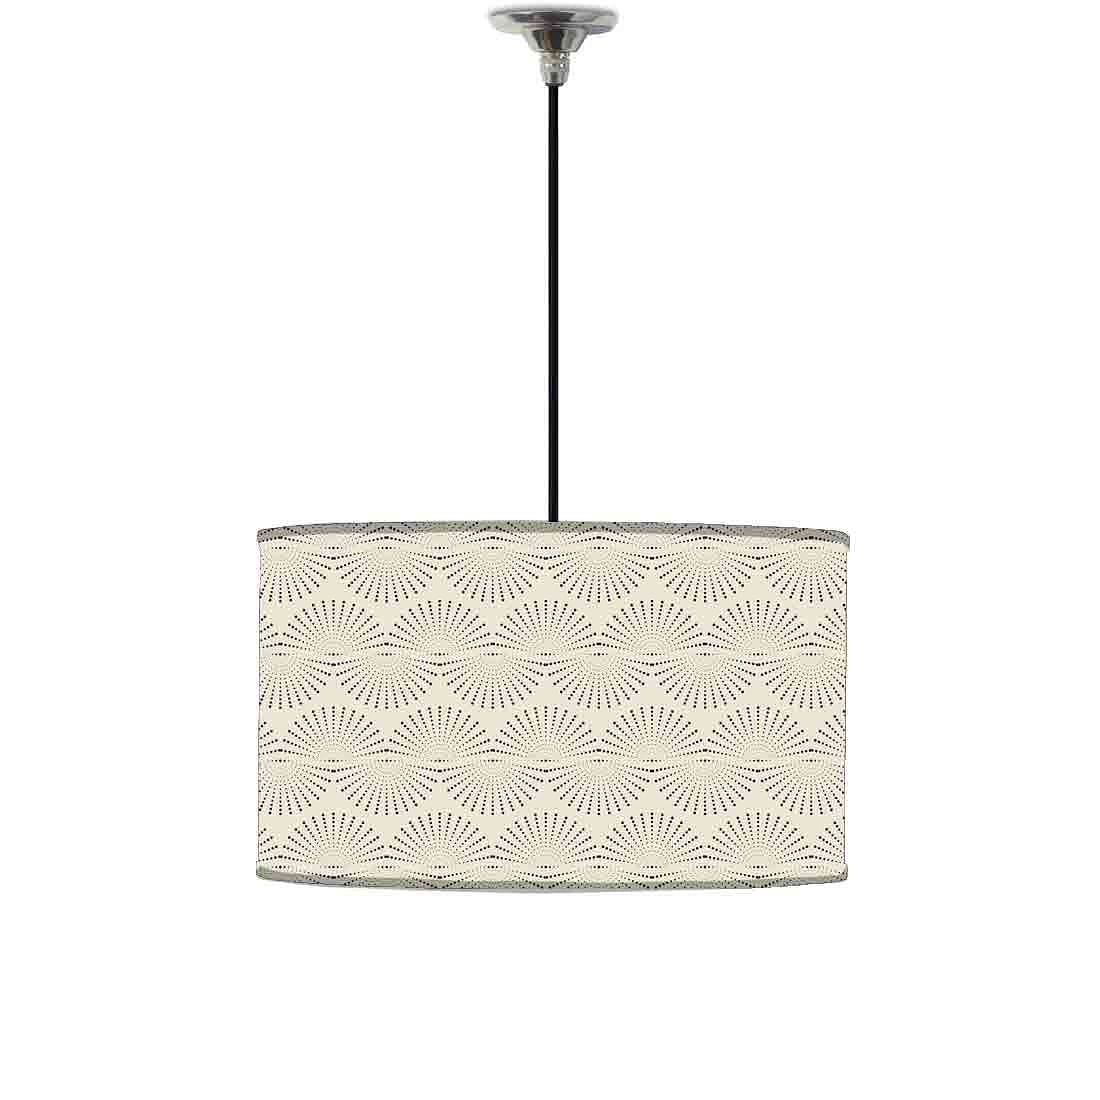 Ceiling Lamp Hanging Drum Lampshade - Grey Retro Pattern